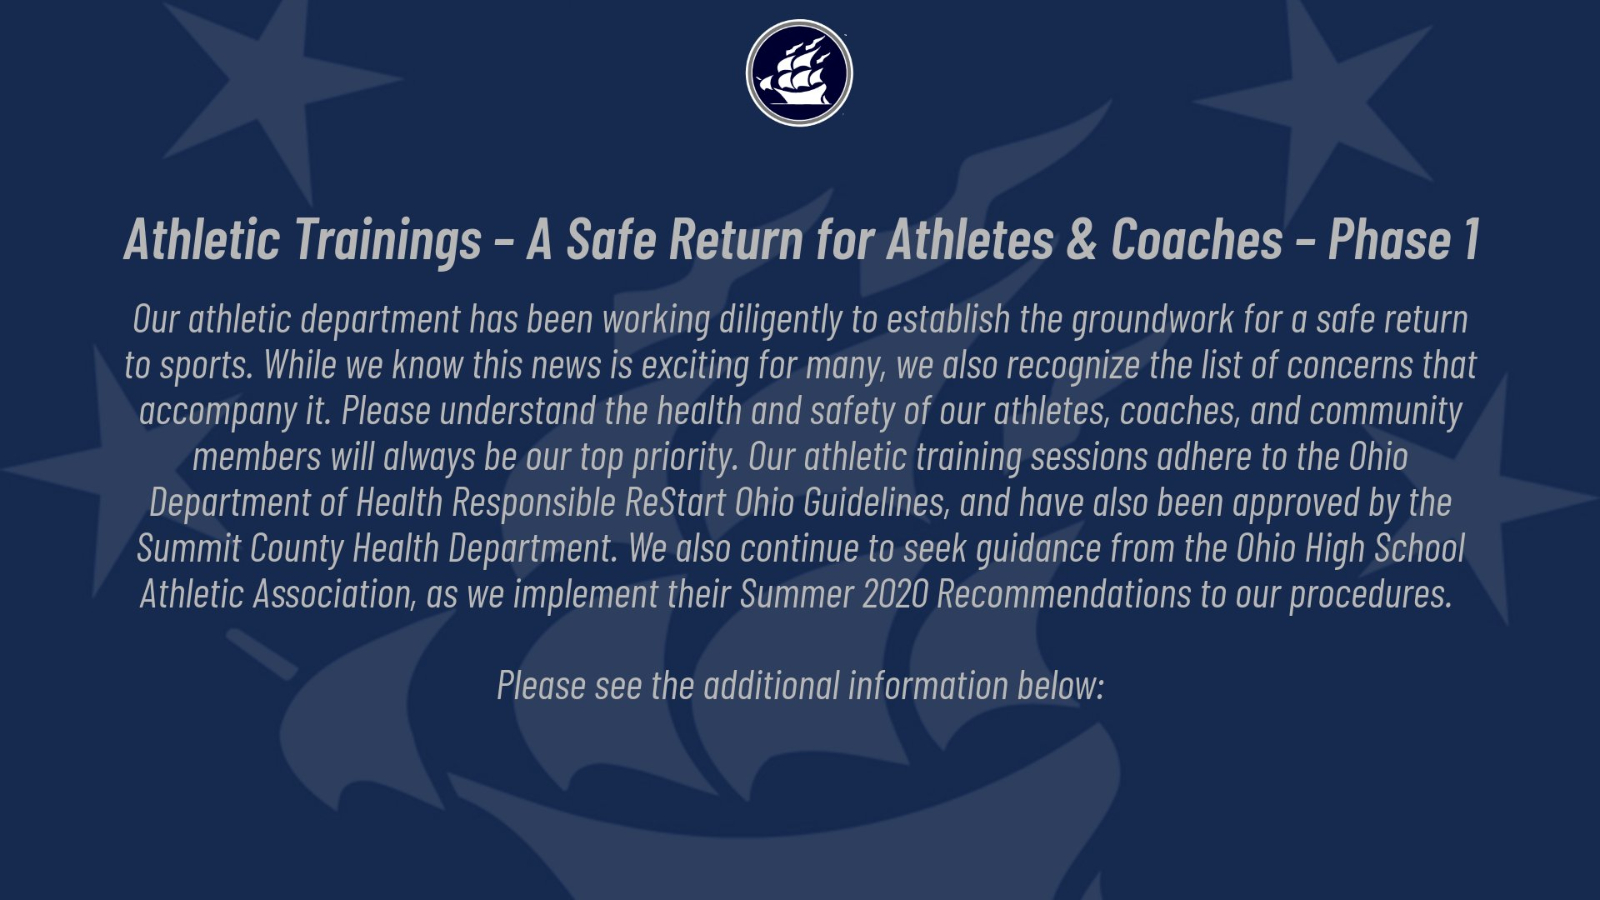 Athletic Trainings – A Safe Return for Athletes & Coaches – Phase 1